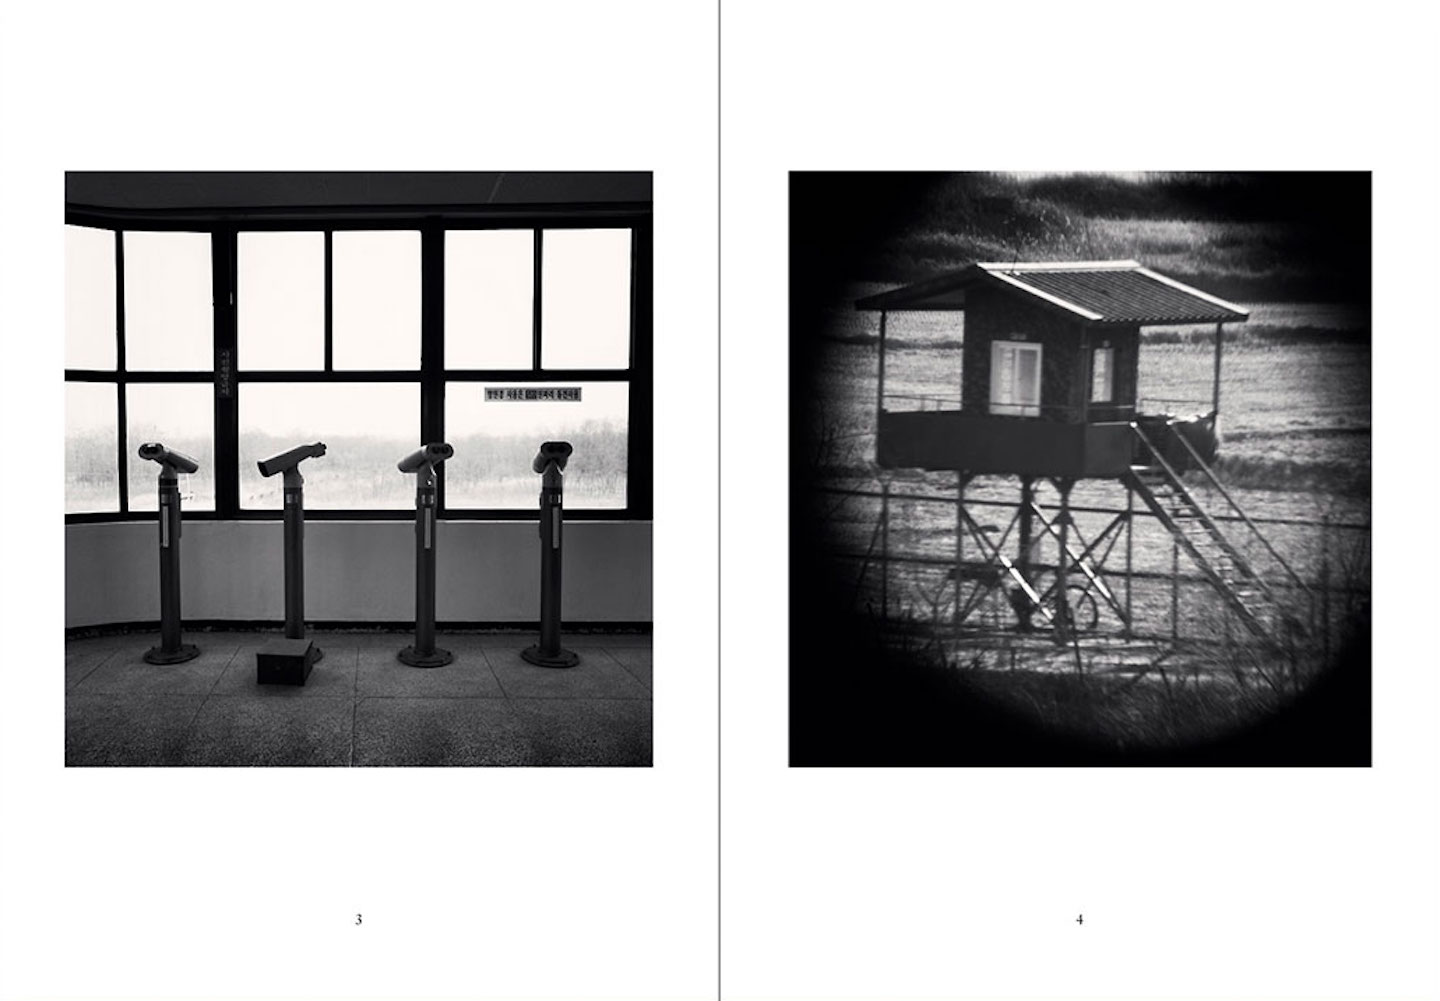 Nazraeli Press One Picture Book Two Series, Set 1: #1-4, Limited Edition(s) (with 4 Prints): Michael Kenna: DMZ (Korean Demilitarized Zone); Tony Mendoza: Florida Dogs; Betty Hahn: Lone Ranger; Carrie Mae Weems: Monument